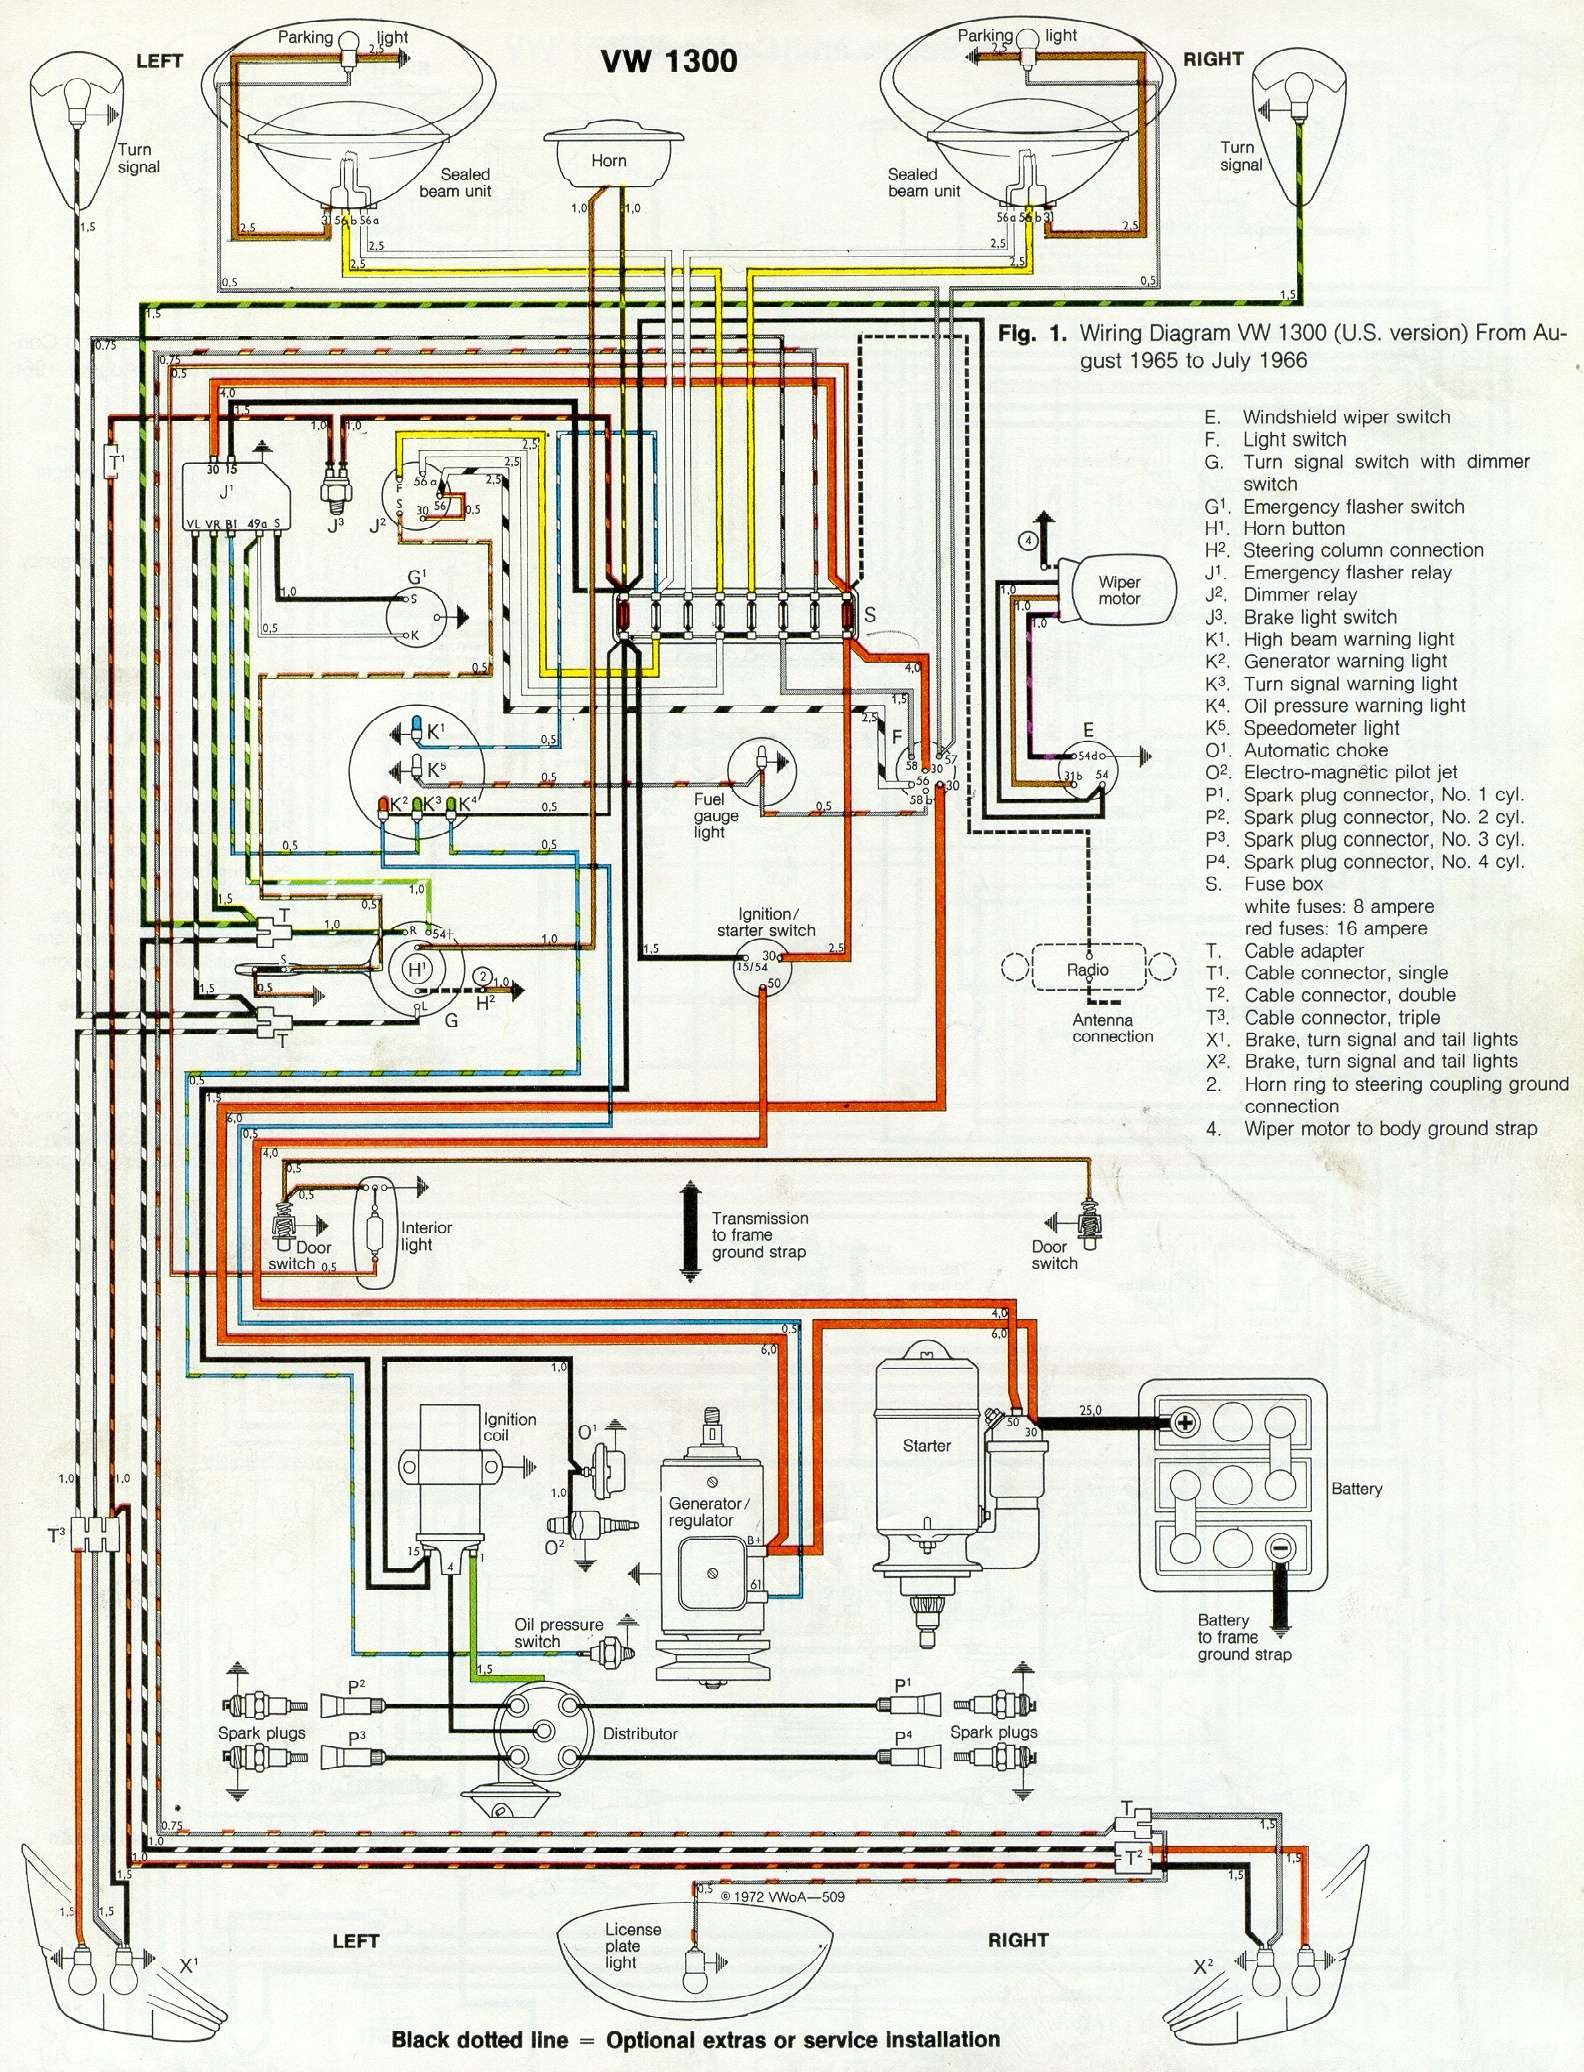 Wiringt2 additionally 1402297 No Spark On My 1966 Econoline Pickups 240 Inline 6 A furthermore Fan Heater Wiring likewise Bosch Relay Wiring Diagram For Horn additionally Battery and charging system. on 1966 vw wiring diagram